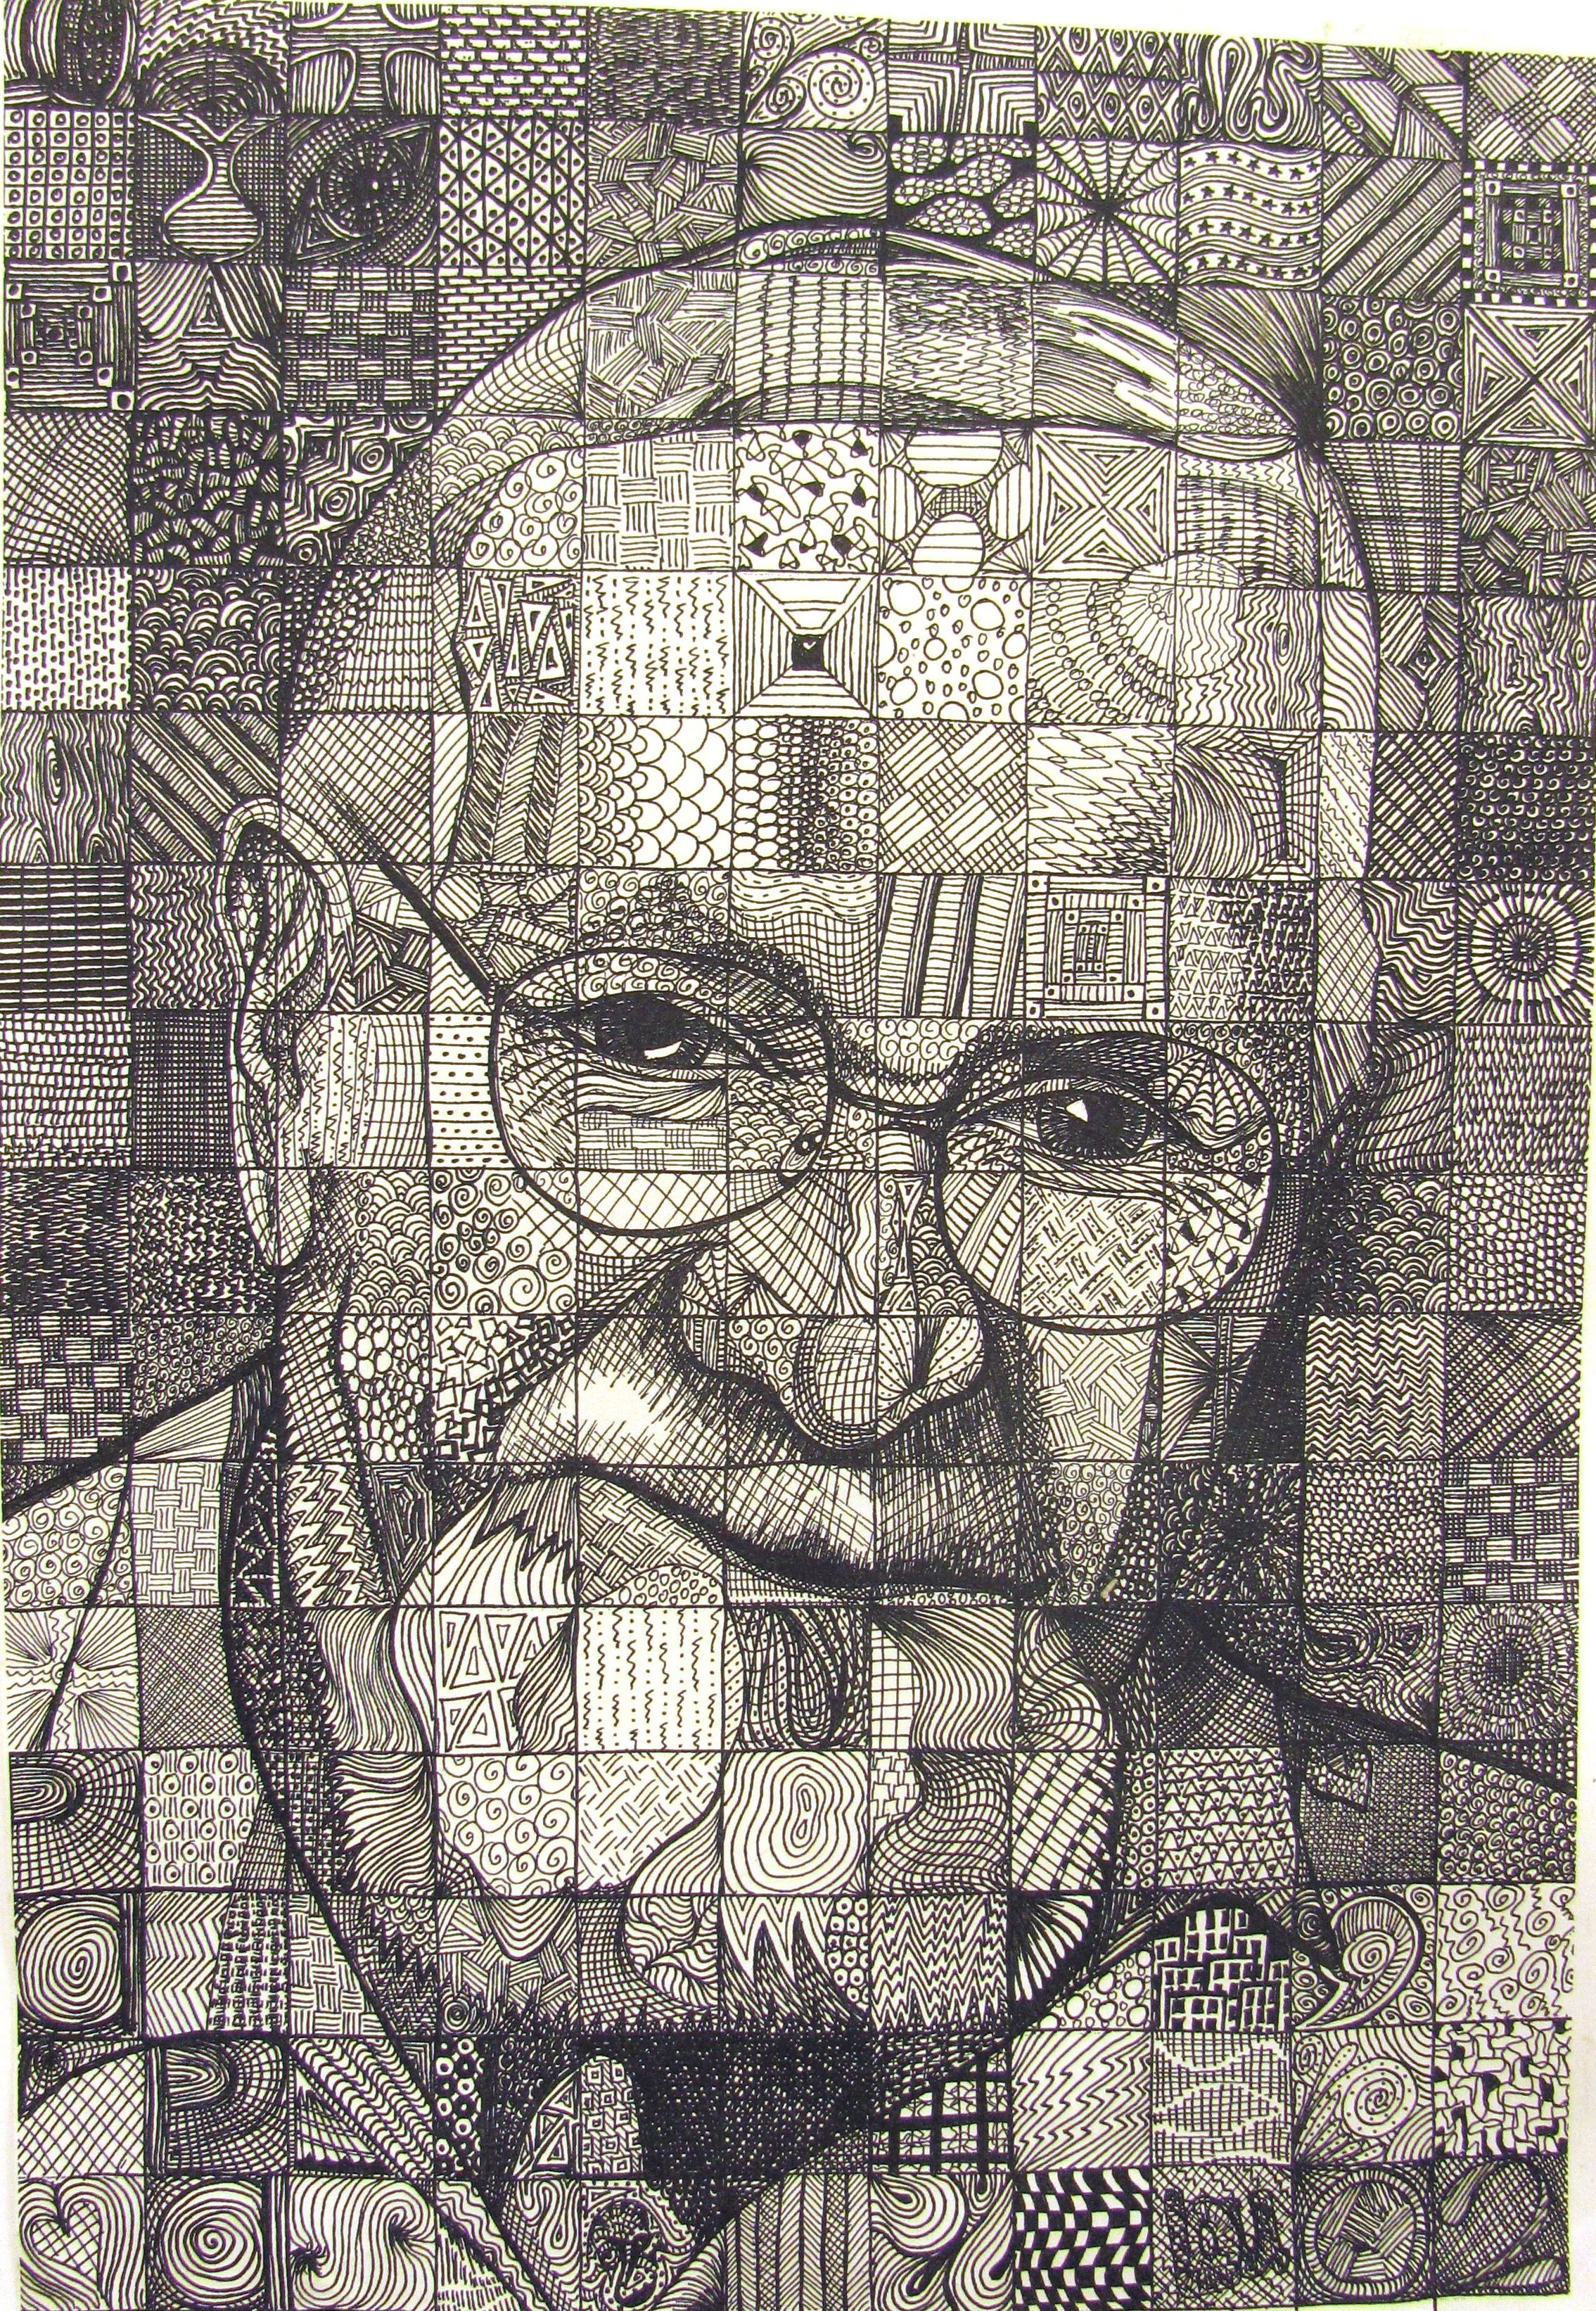 Papa Bylou Traylor Example Of Grid Drawing Using Pattern